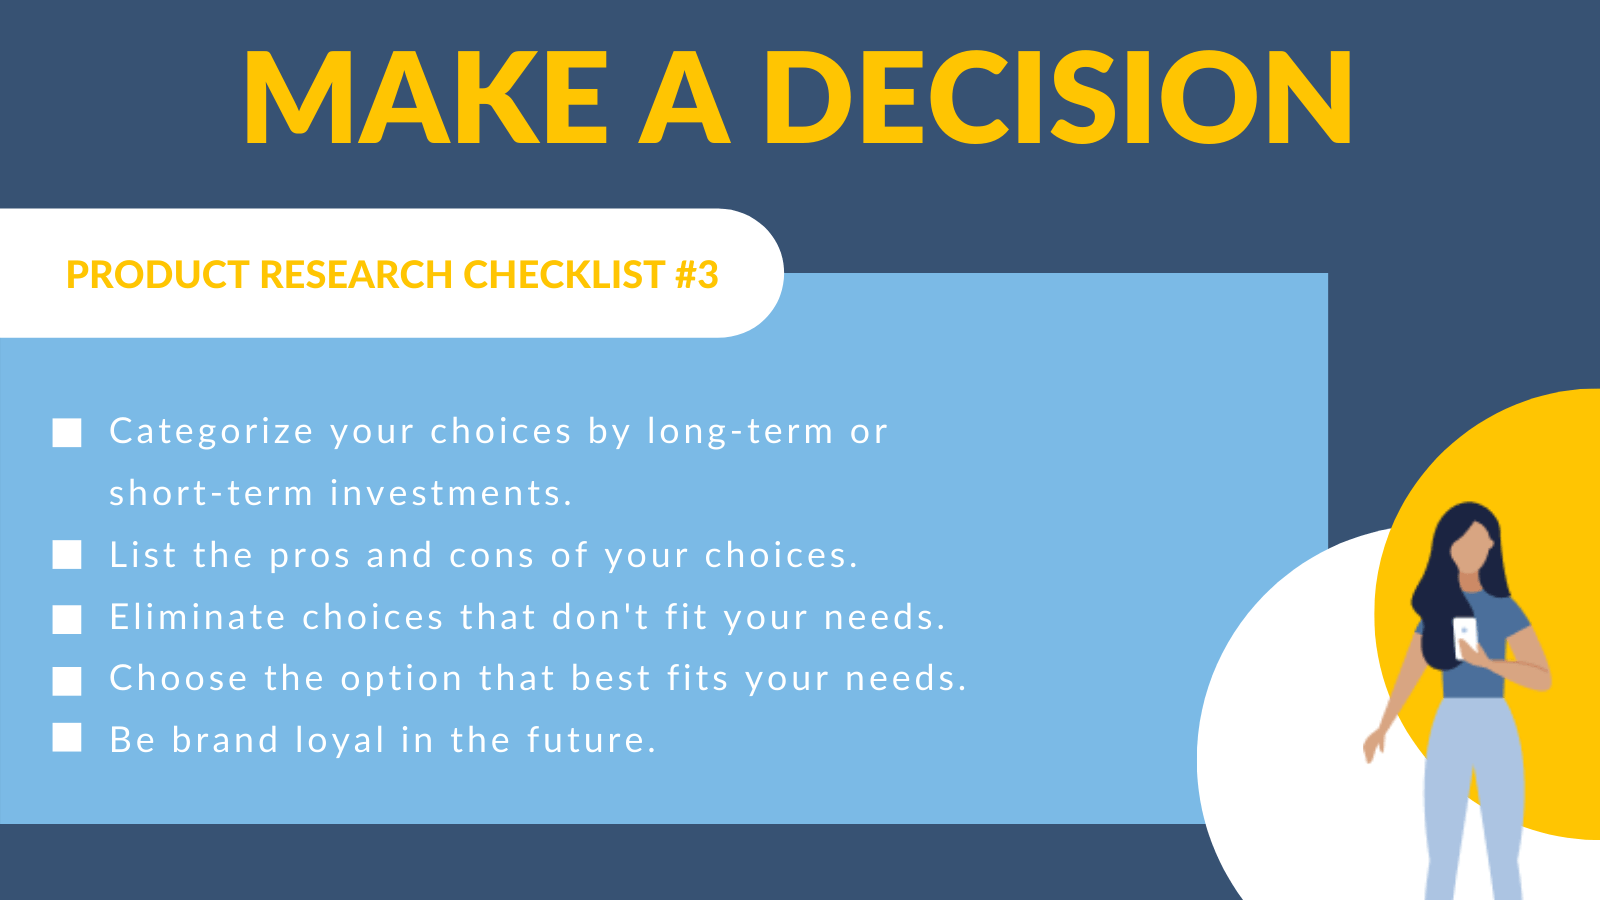 Make a decision checklist